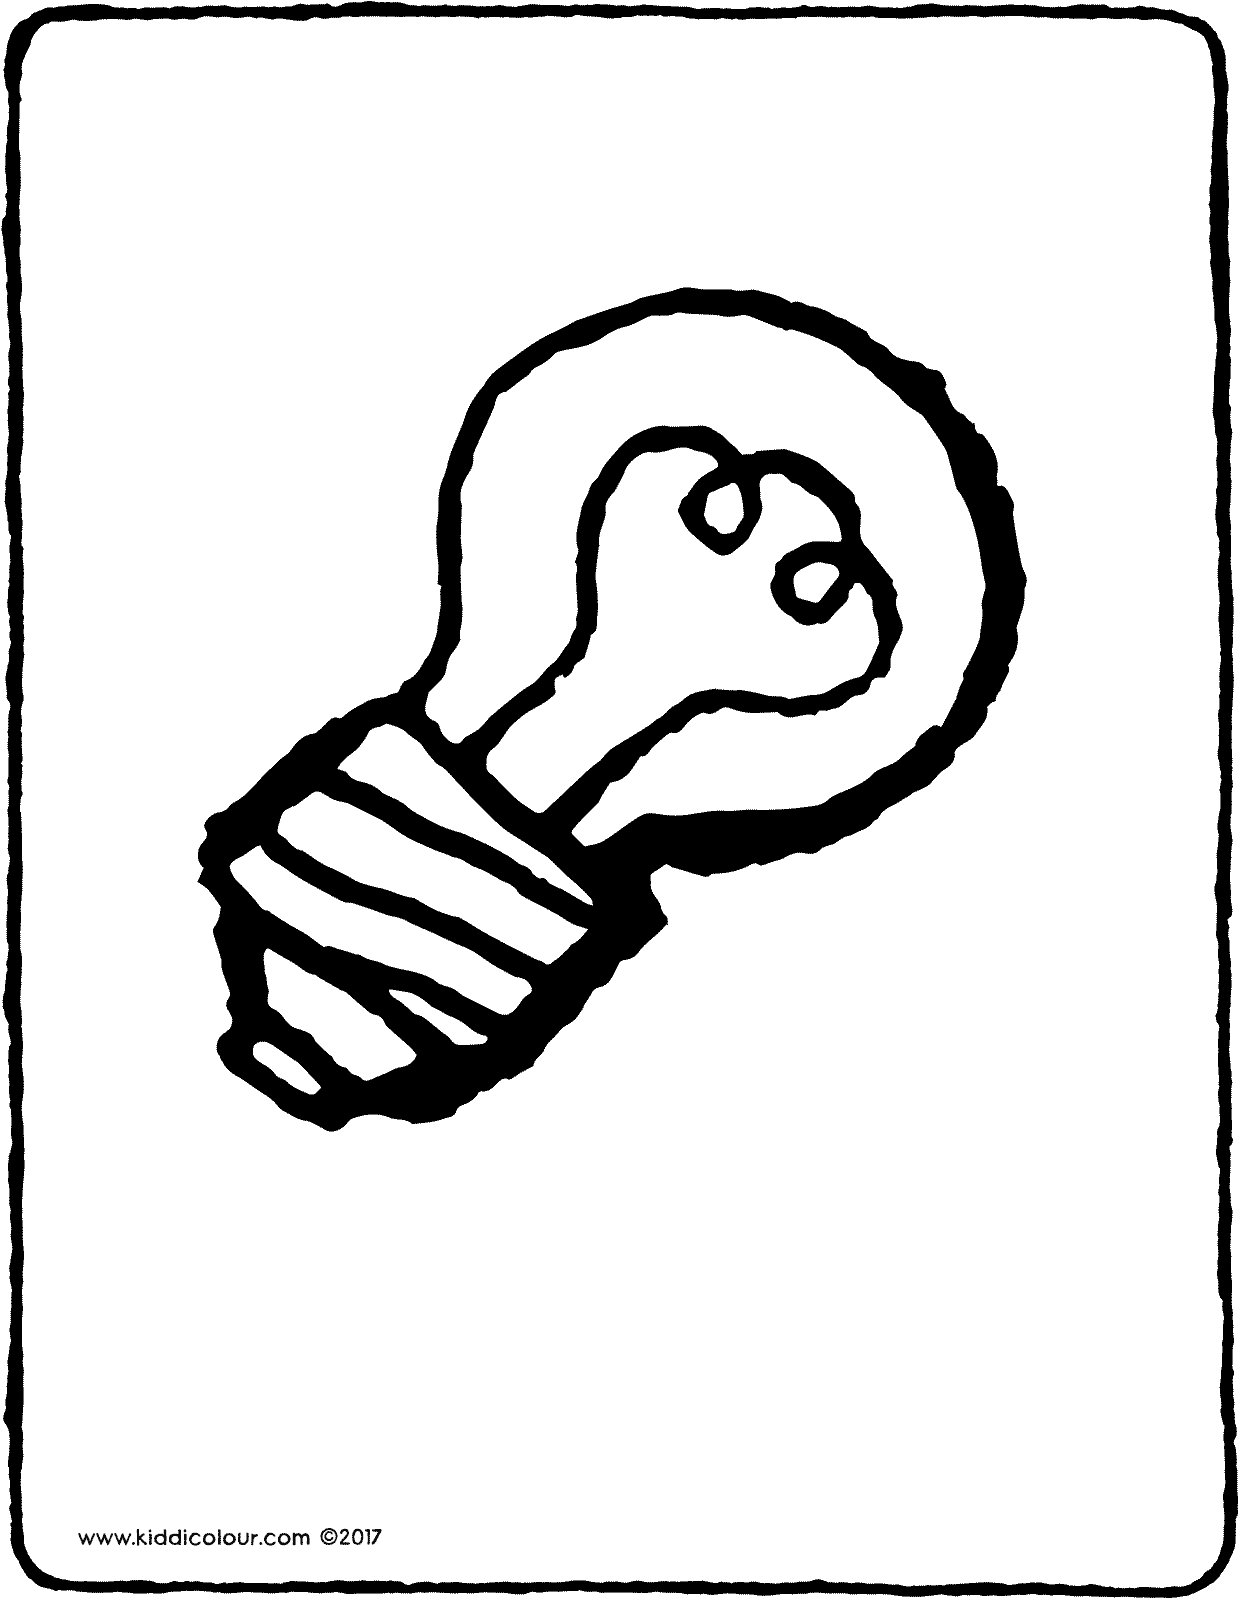 light bulb colouring page drawing picture 01V